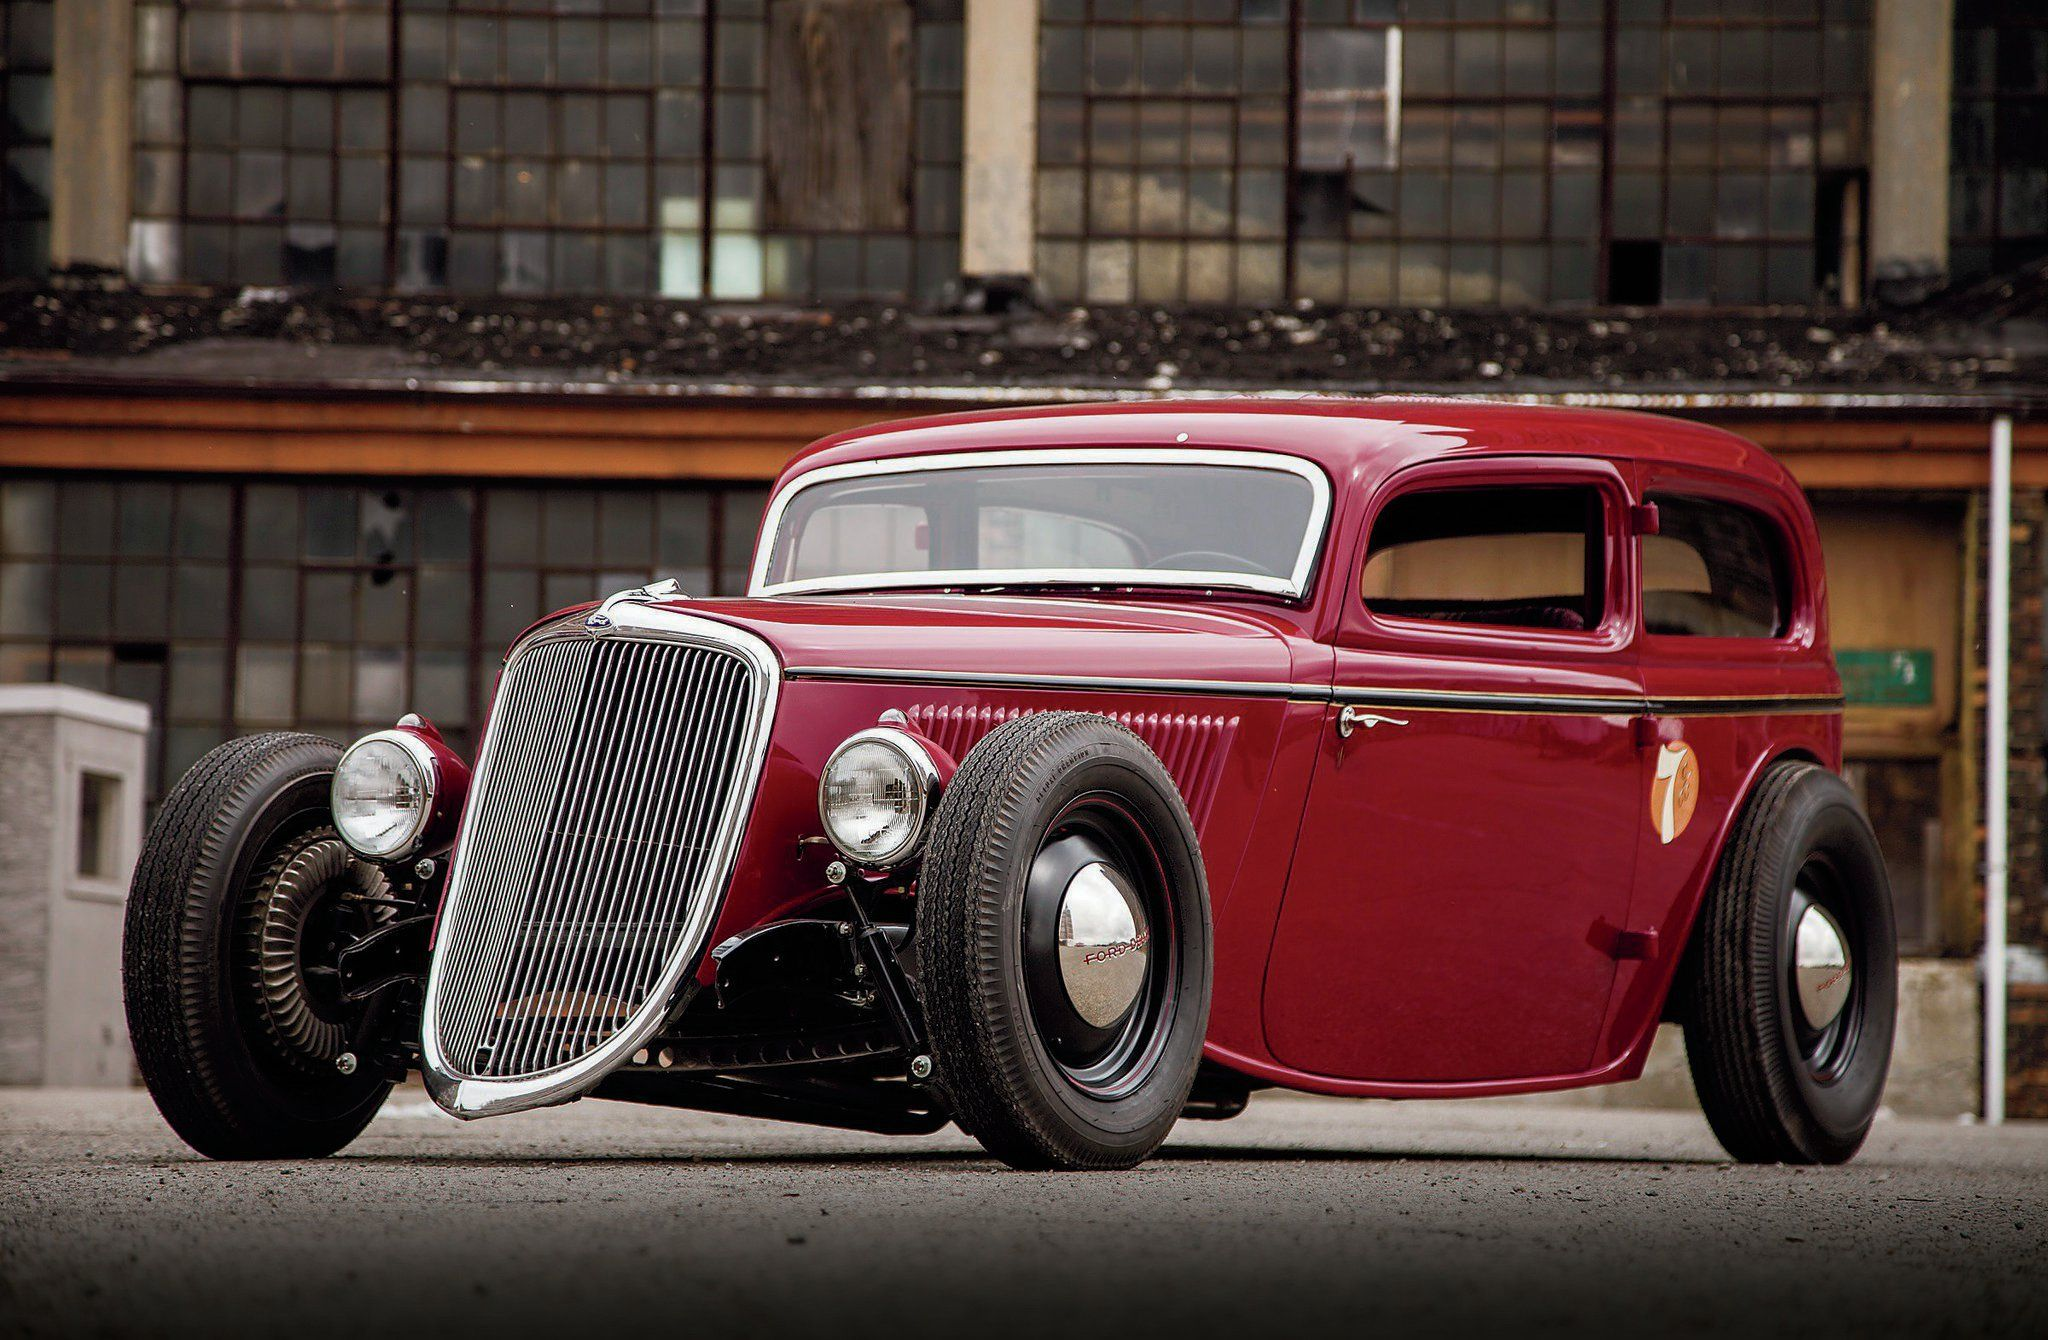 View this 1934 Ford Sedan 16X4 Early Ford Wheels Photo 1. Kirk ...